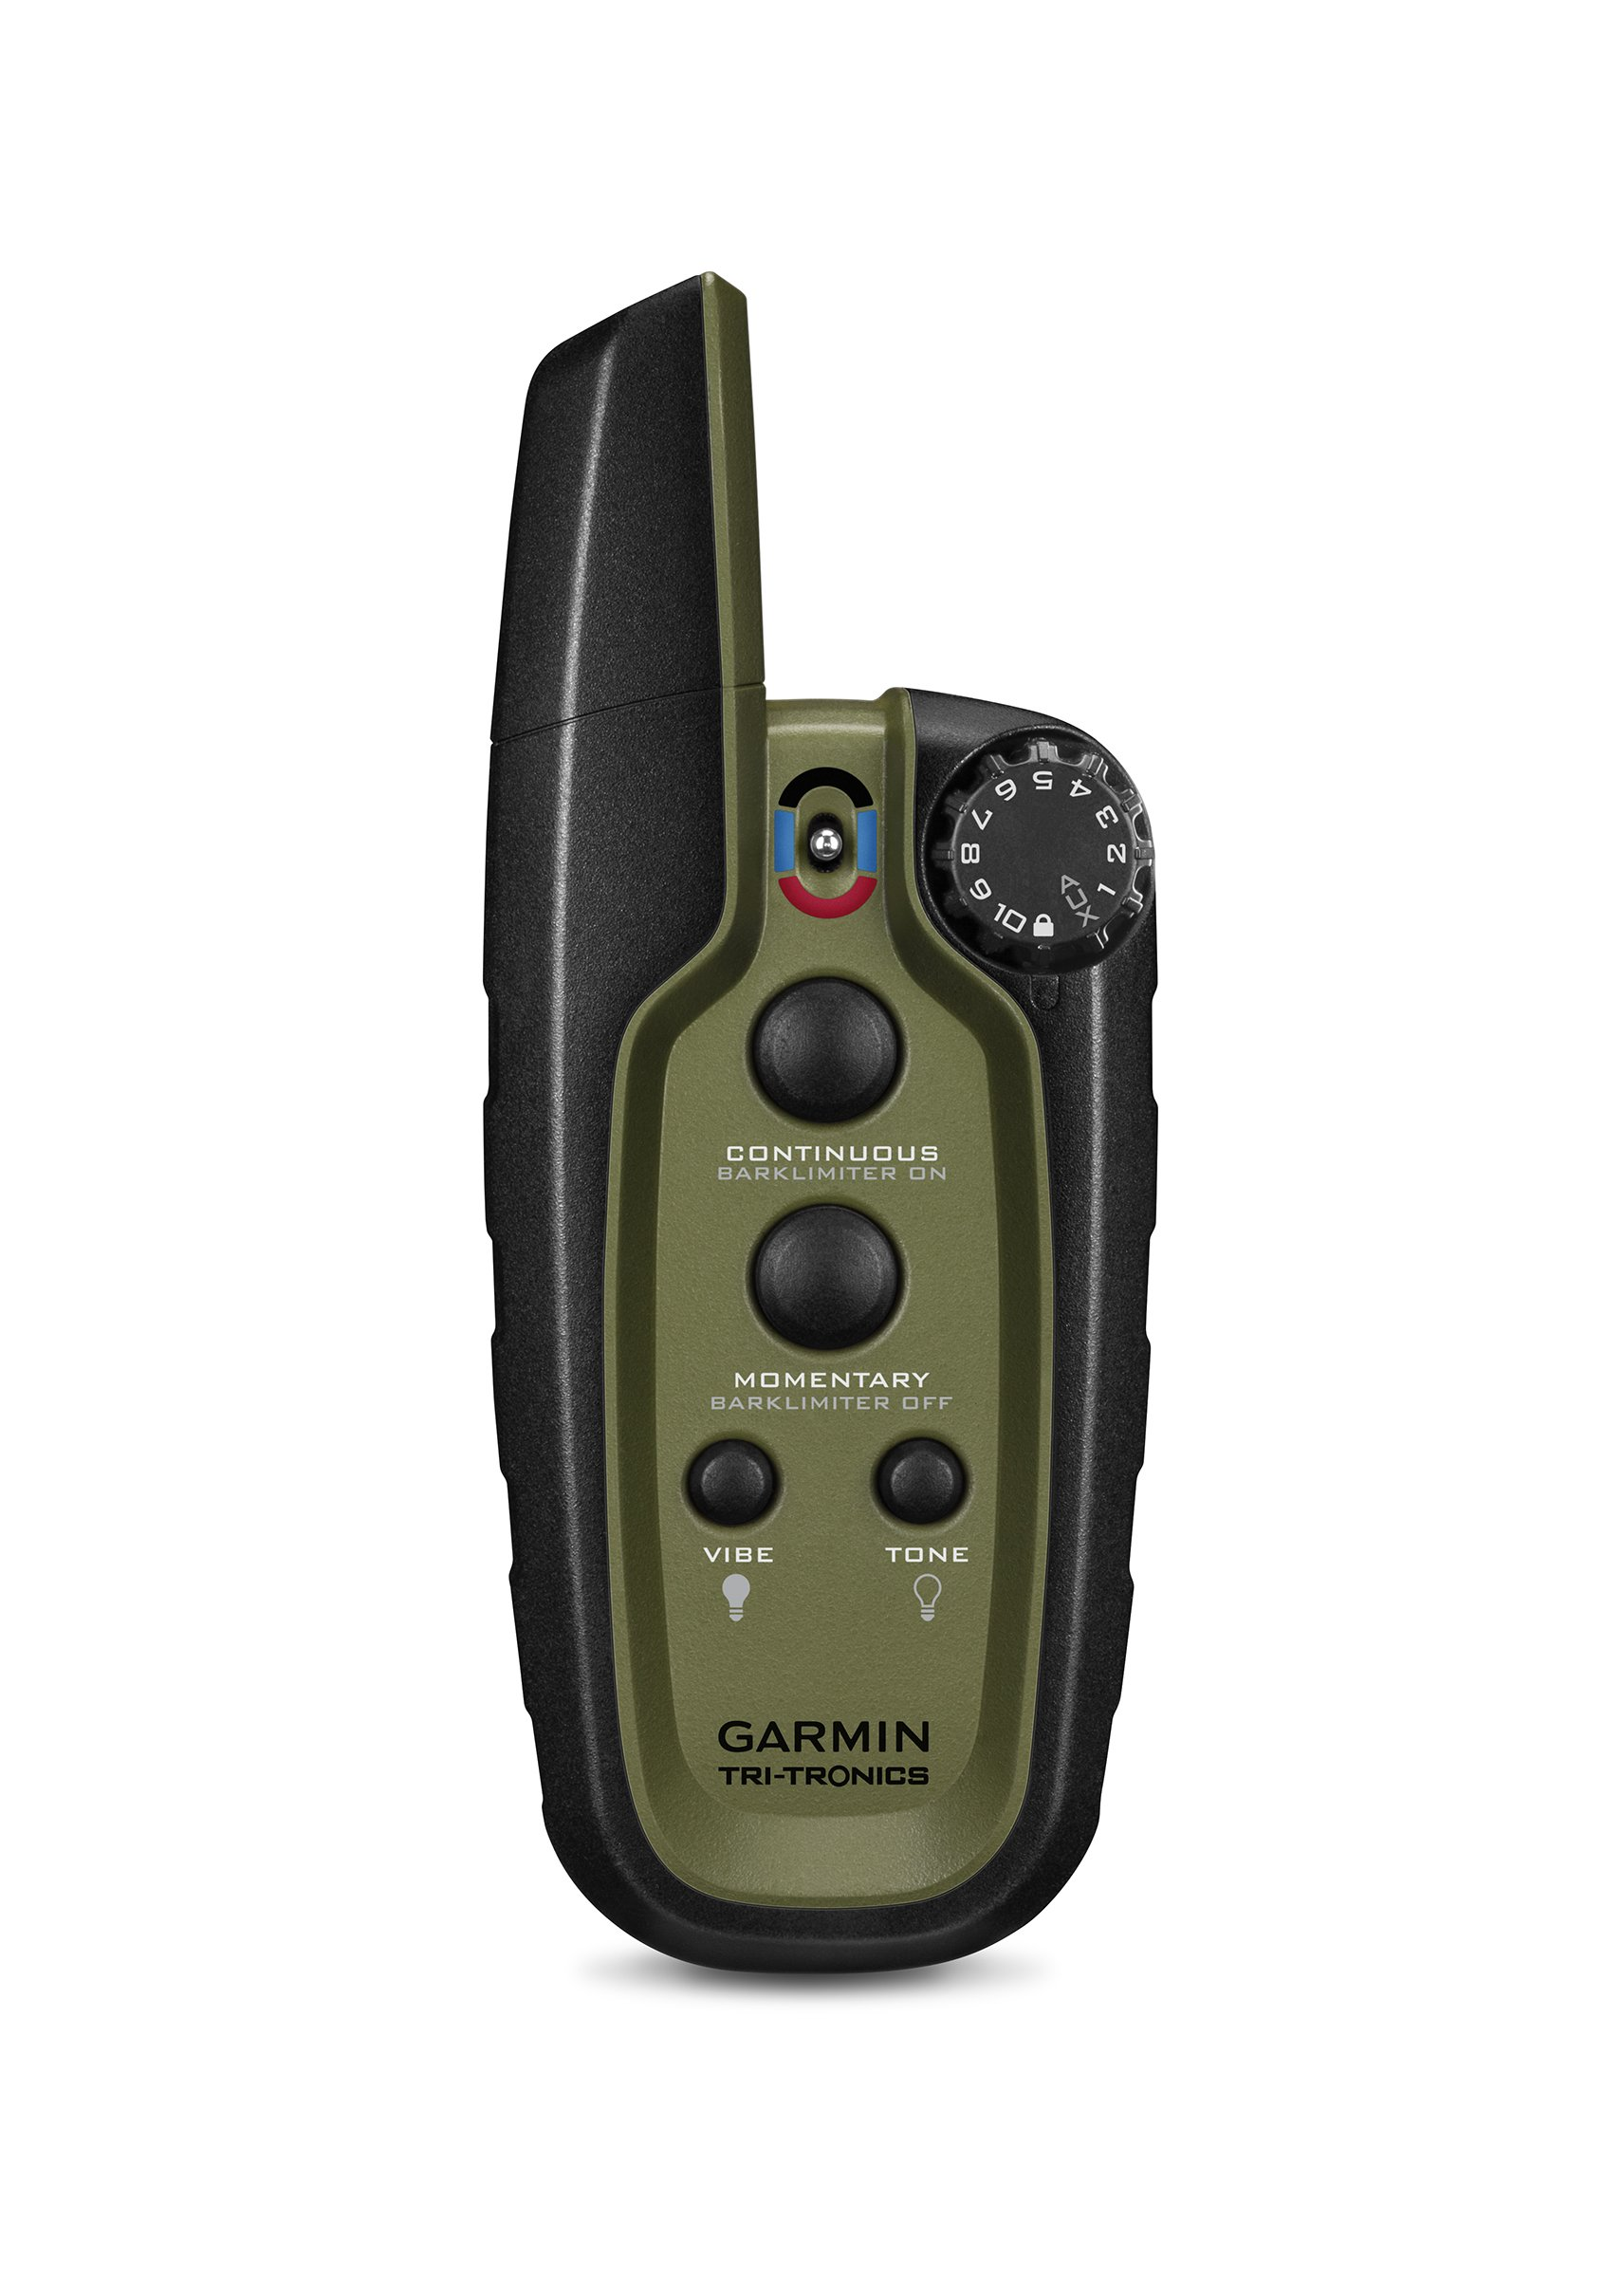 Garmin Sport PRO Bundle, Dog Training Collar and Handheld, 1handed Training of Up to 3 Dogs, Tone and Vibration by Garmin (Image #3)